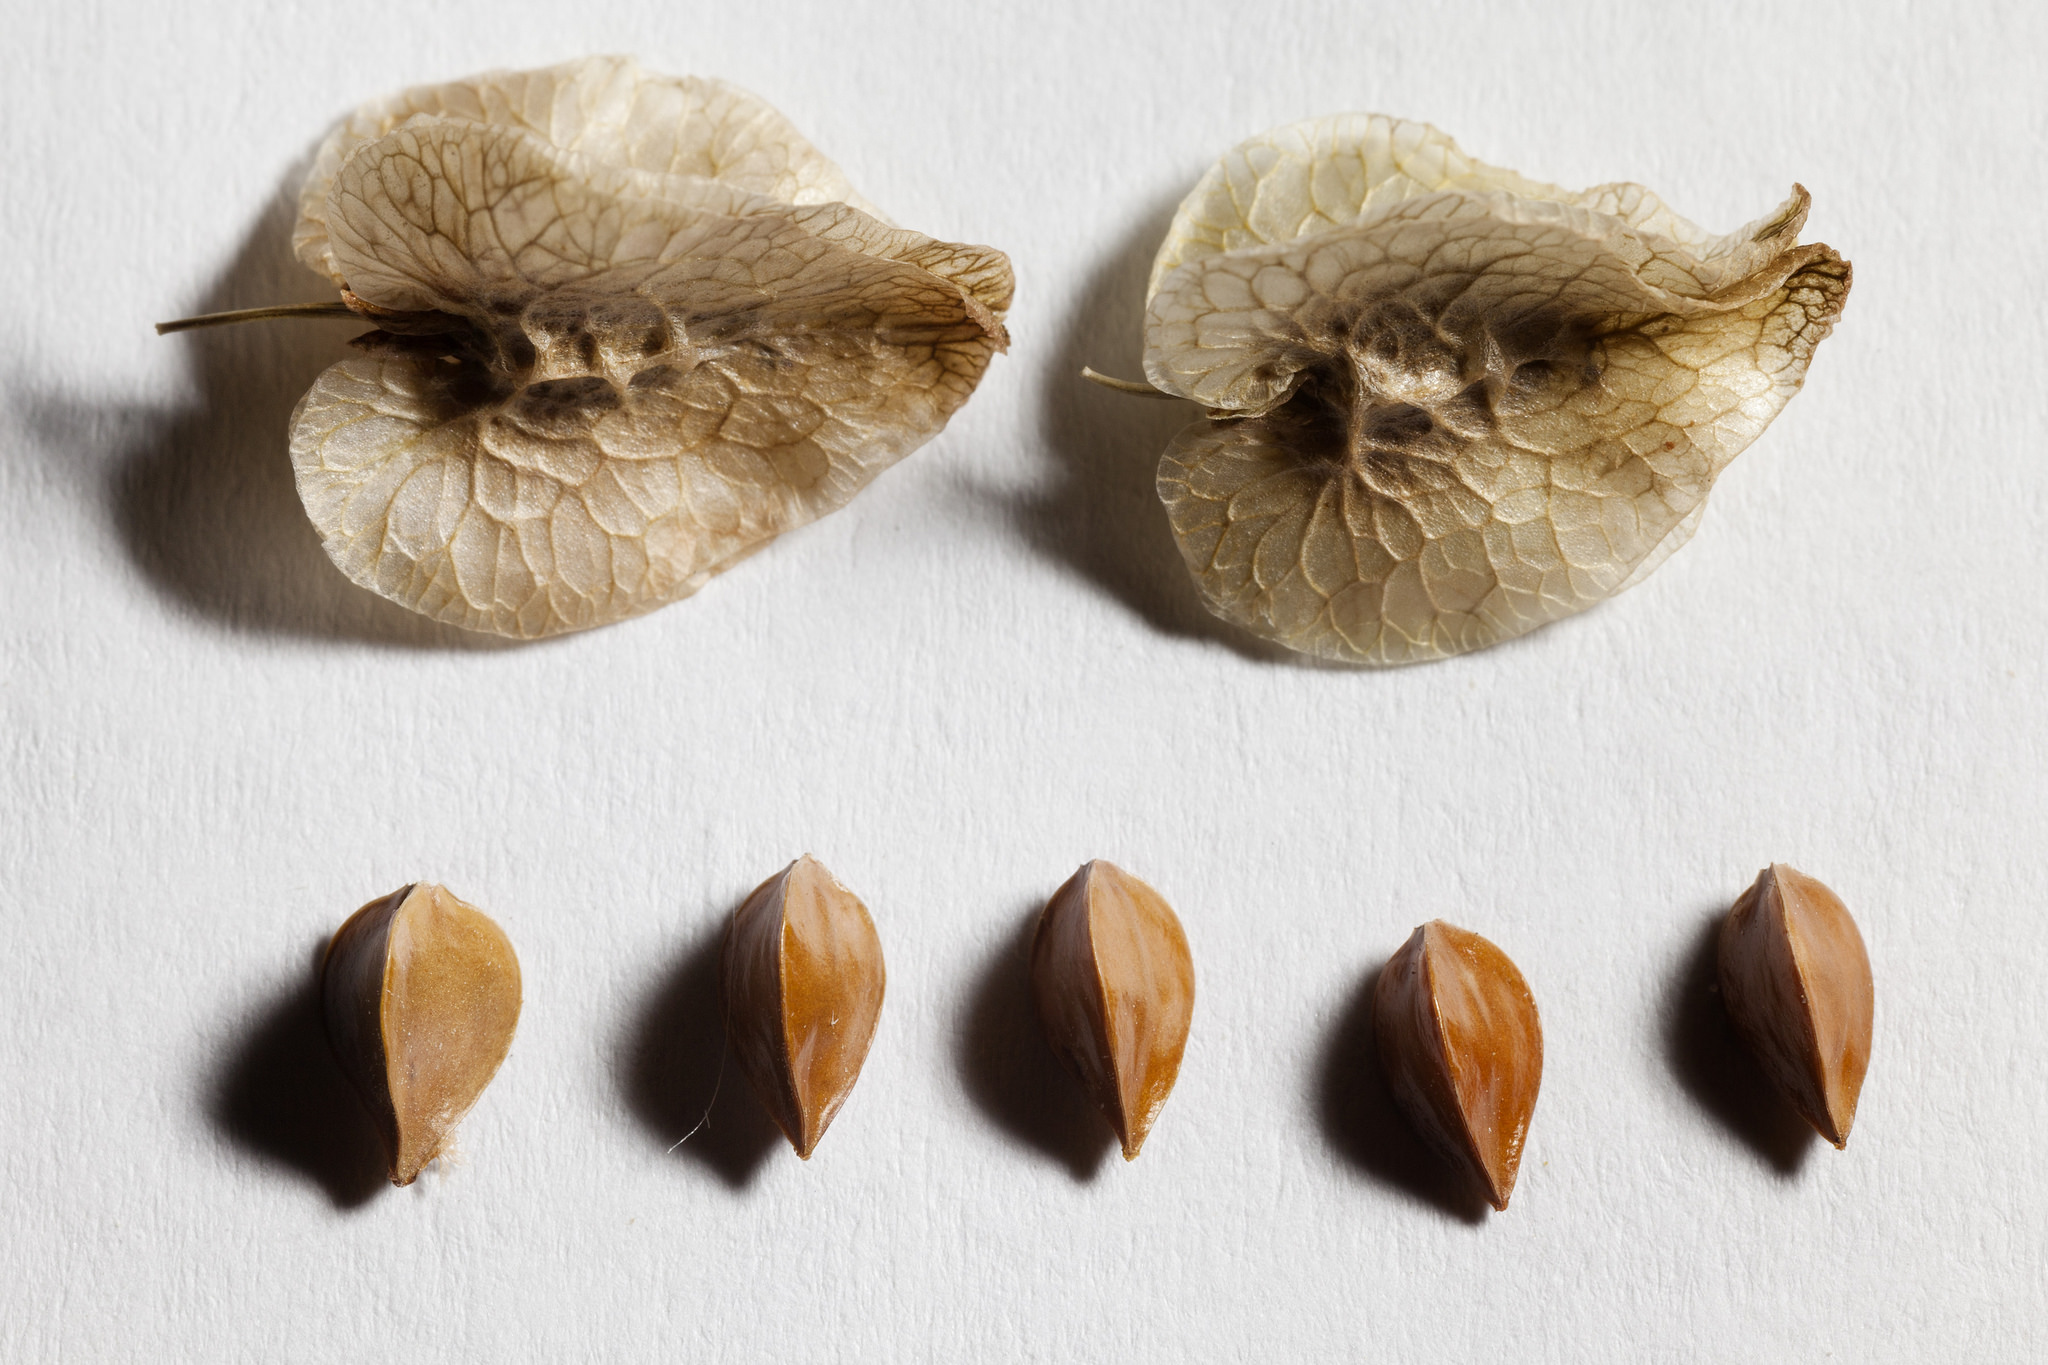 Seeds, which have a papery covering formed from the dried sepals of the flower